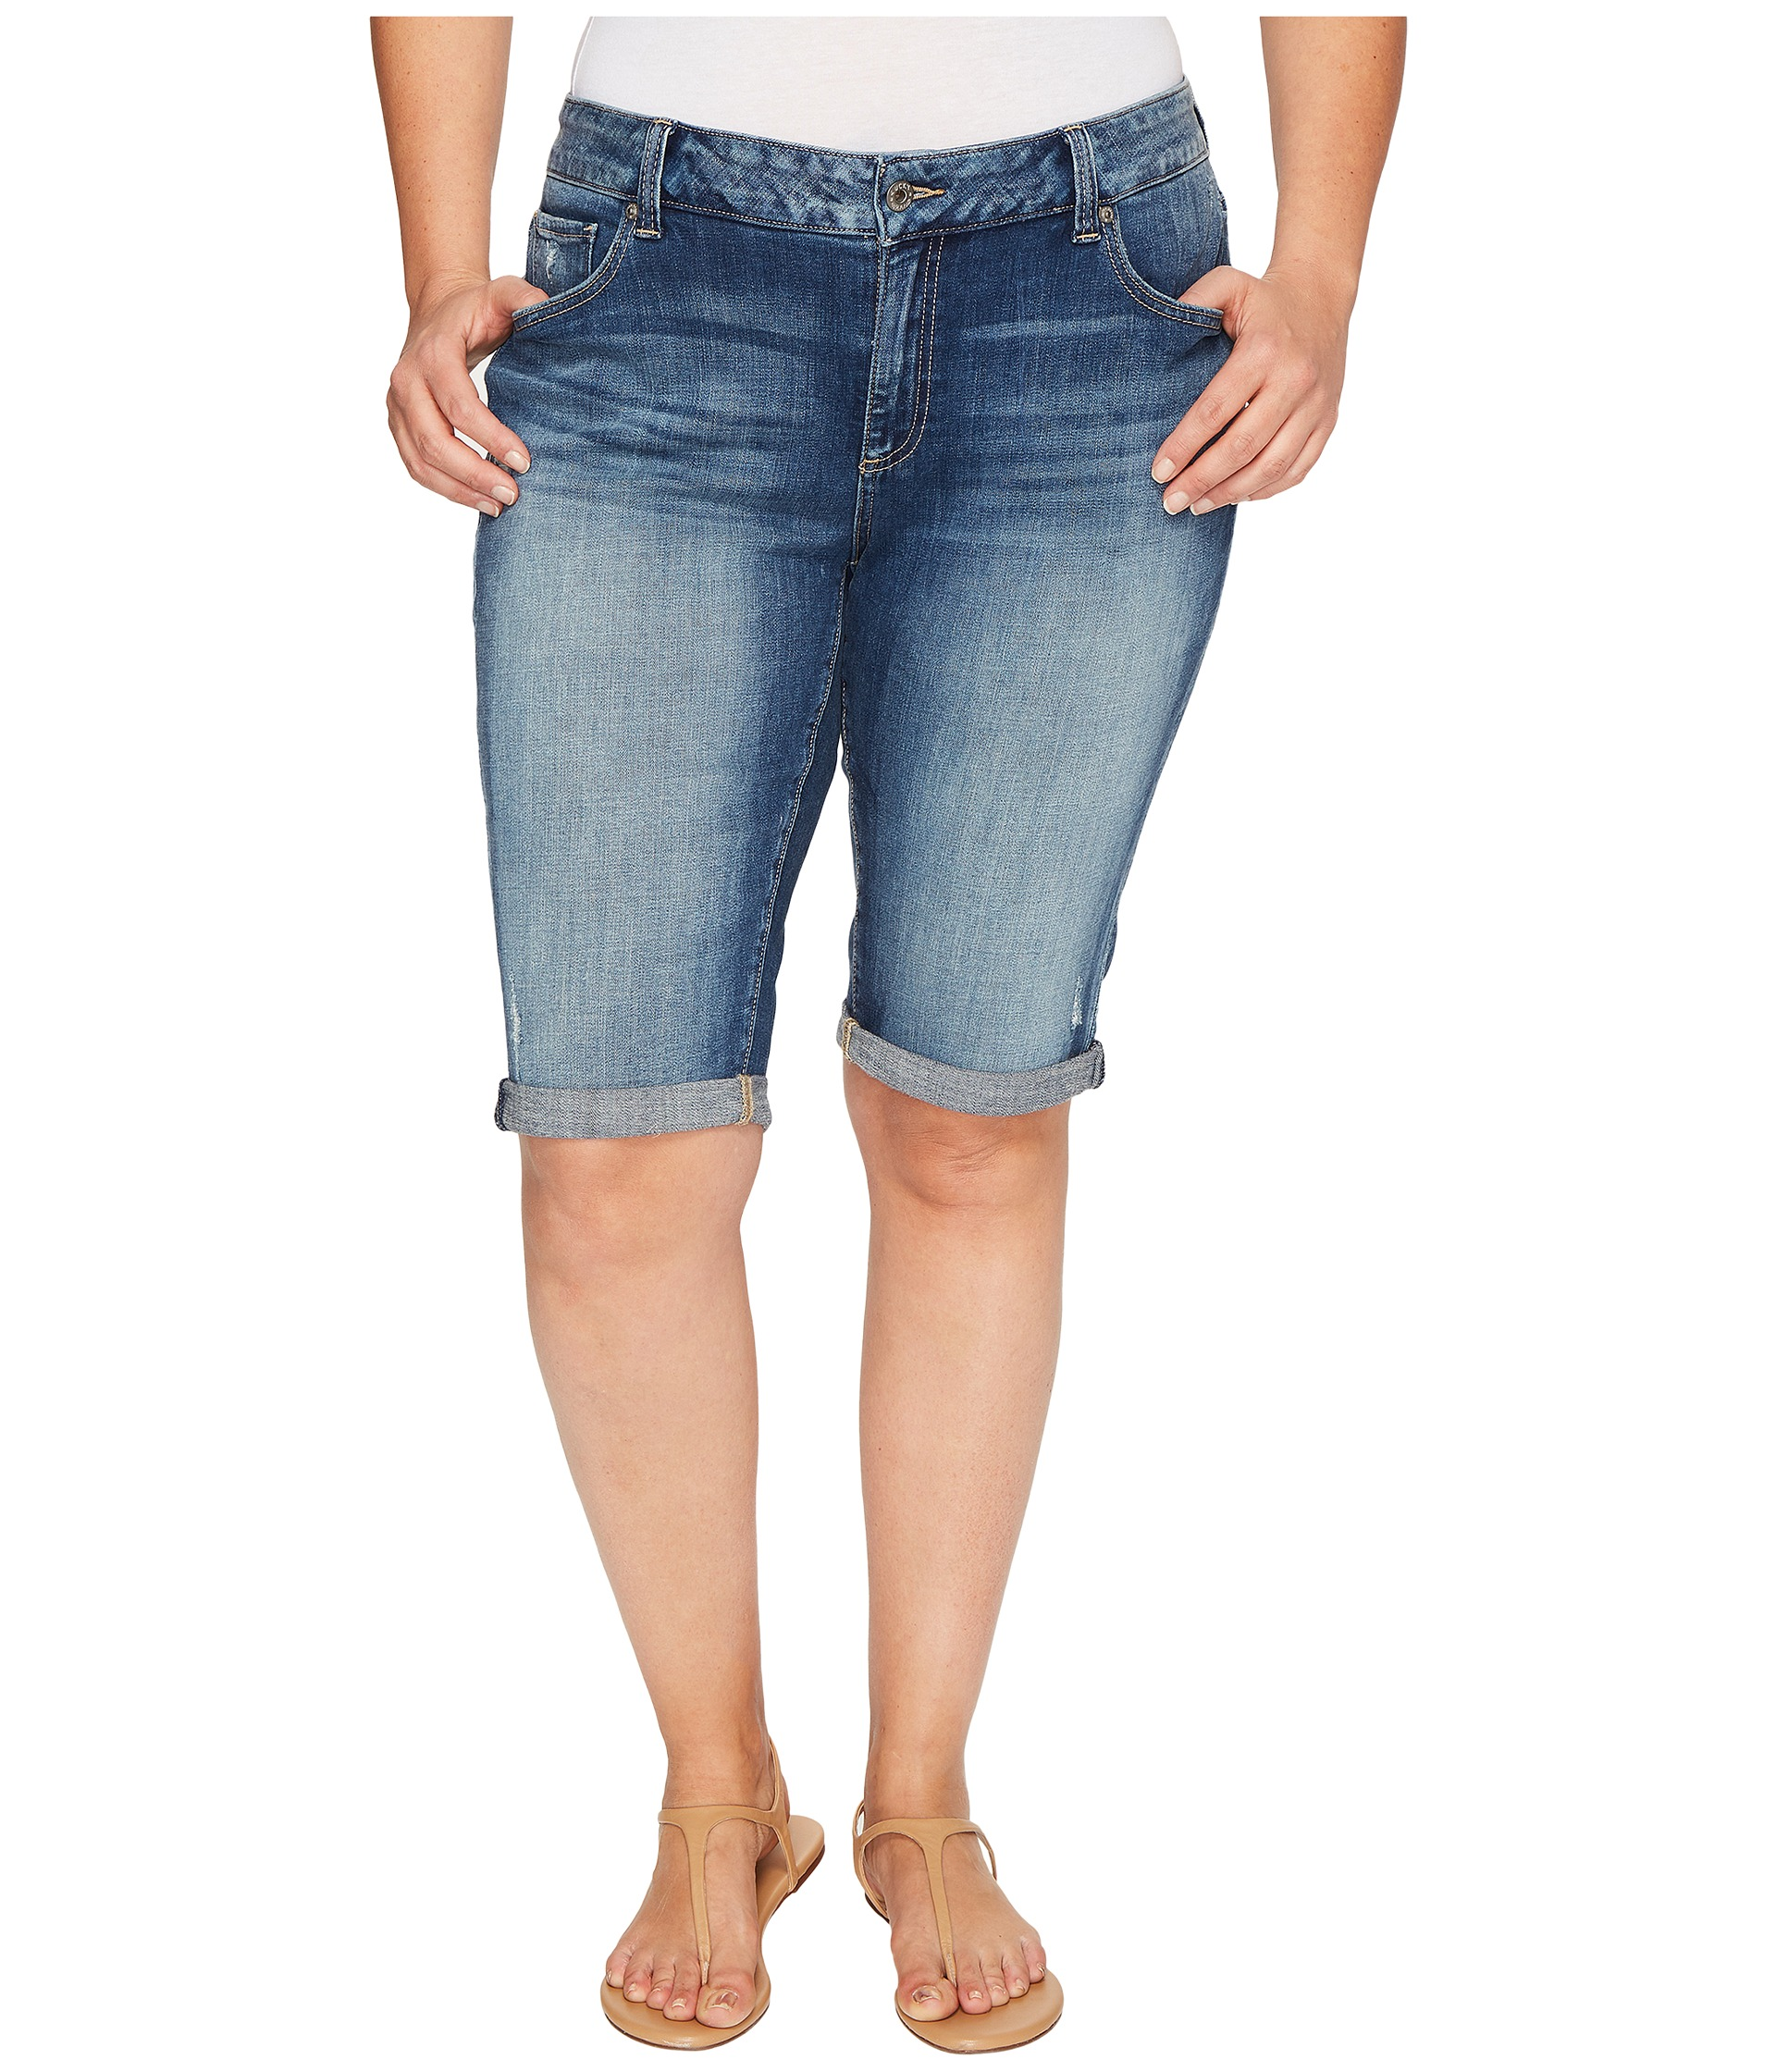 Free shipping BOTH ways on plus size womens bermuda shorts, from our vast selection of styles. Fast delivery, and 24/7/ real-person service with a smile. Click or call